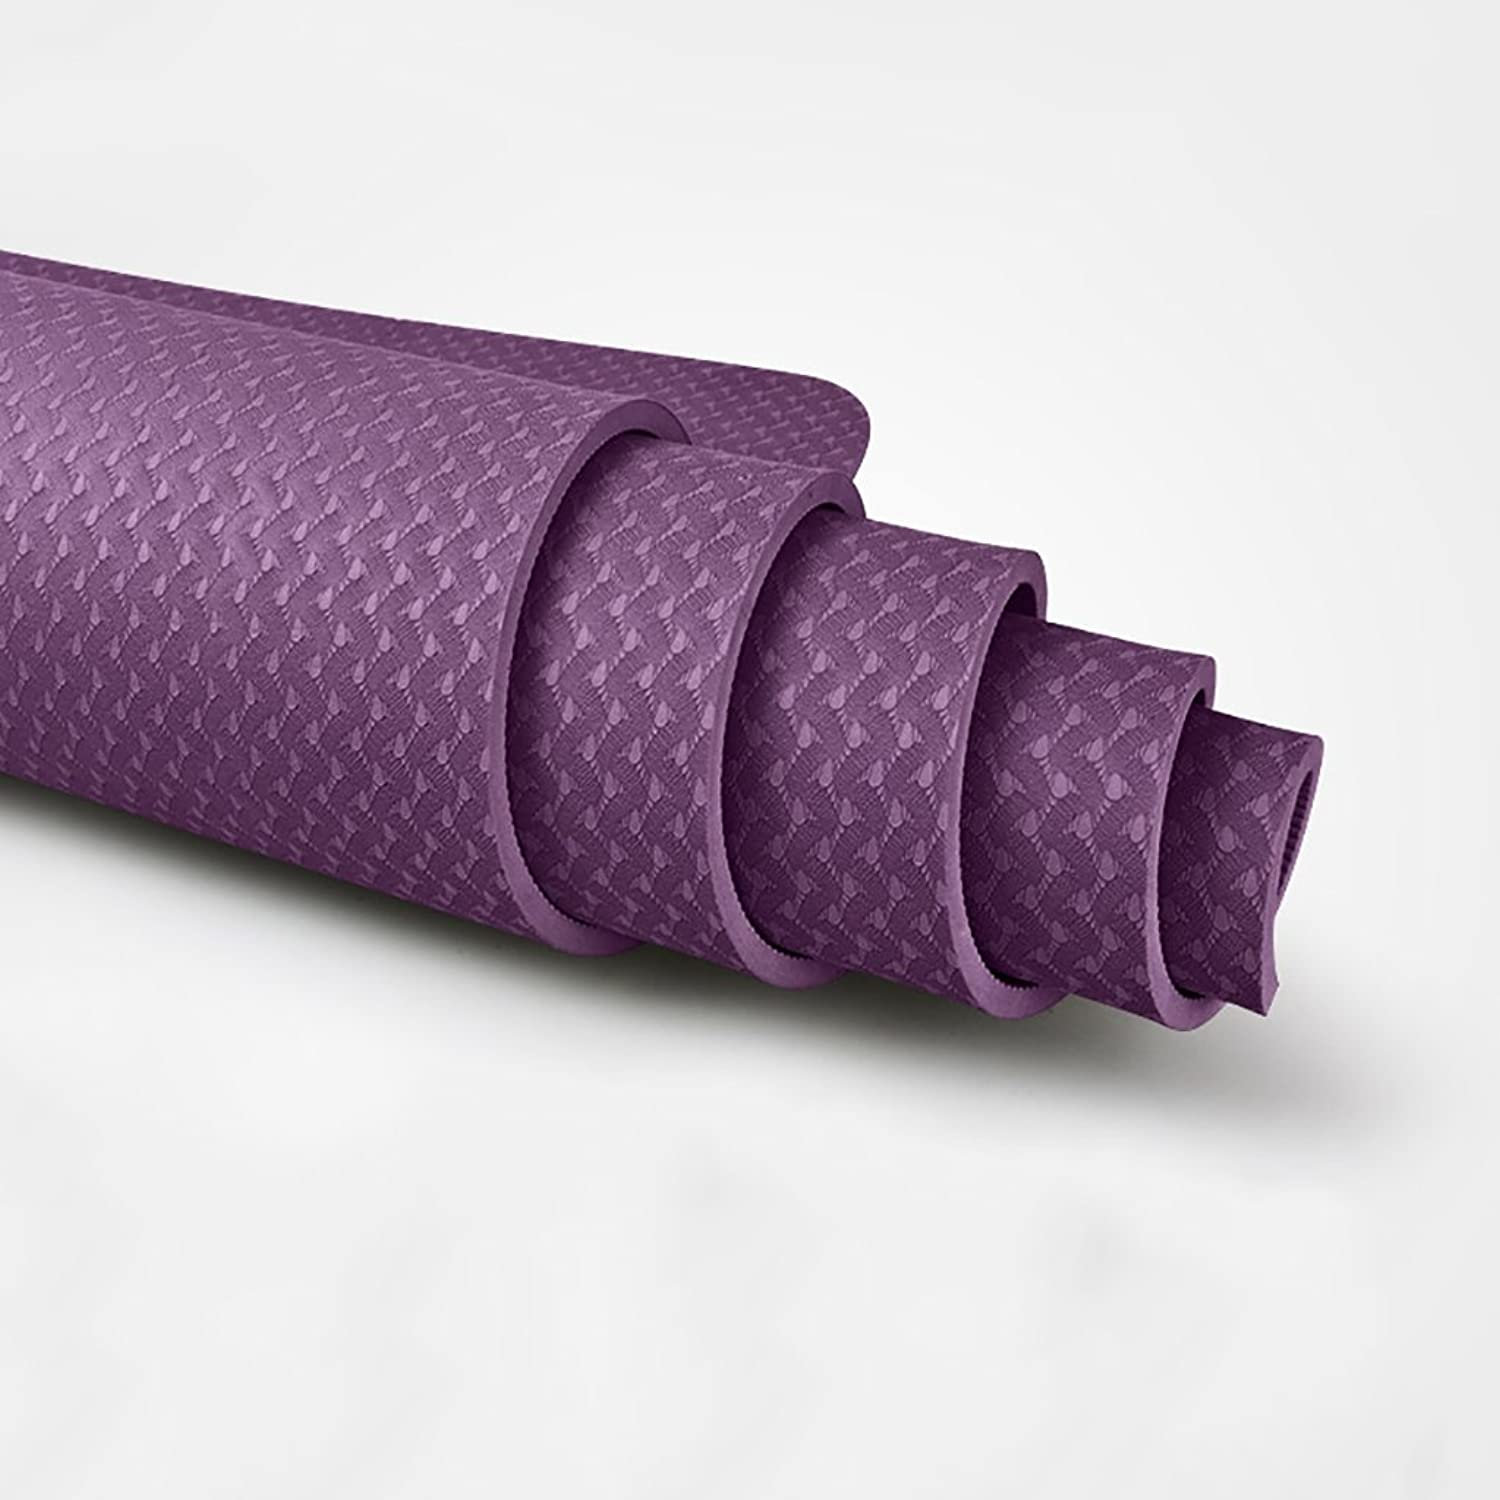 YONGLIANG Outdoor Supplies TPE Yoga Mat Female Beginners Authentic Thickened Tasteless AntiSkid Exercise Fitness Mat Yoga Mat